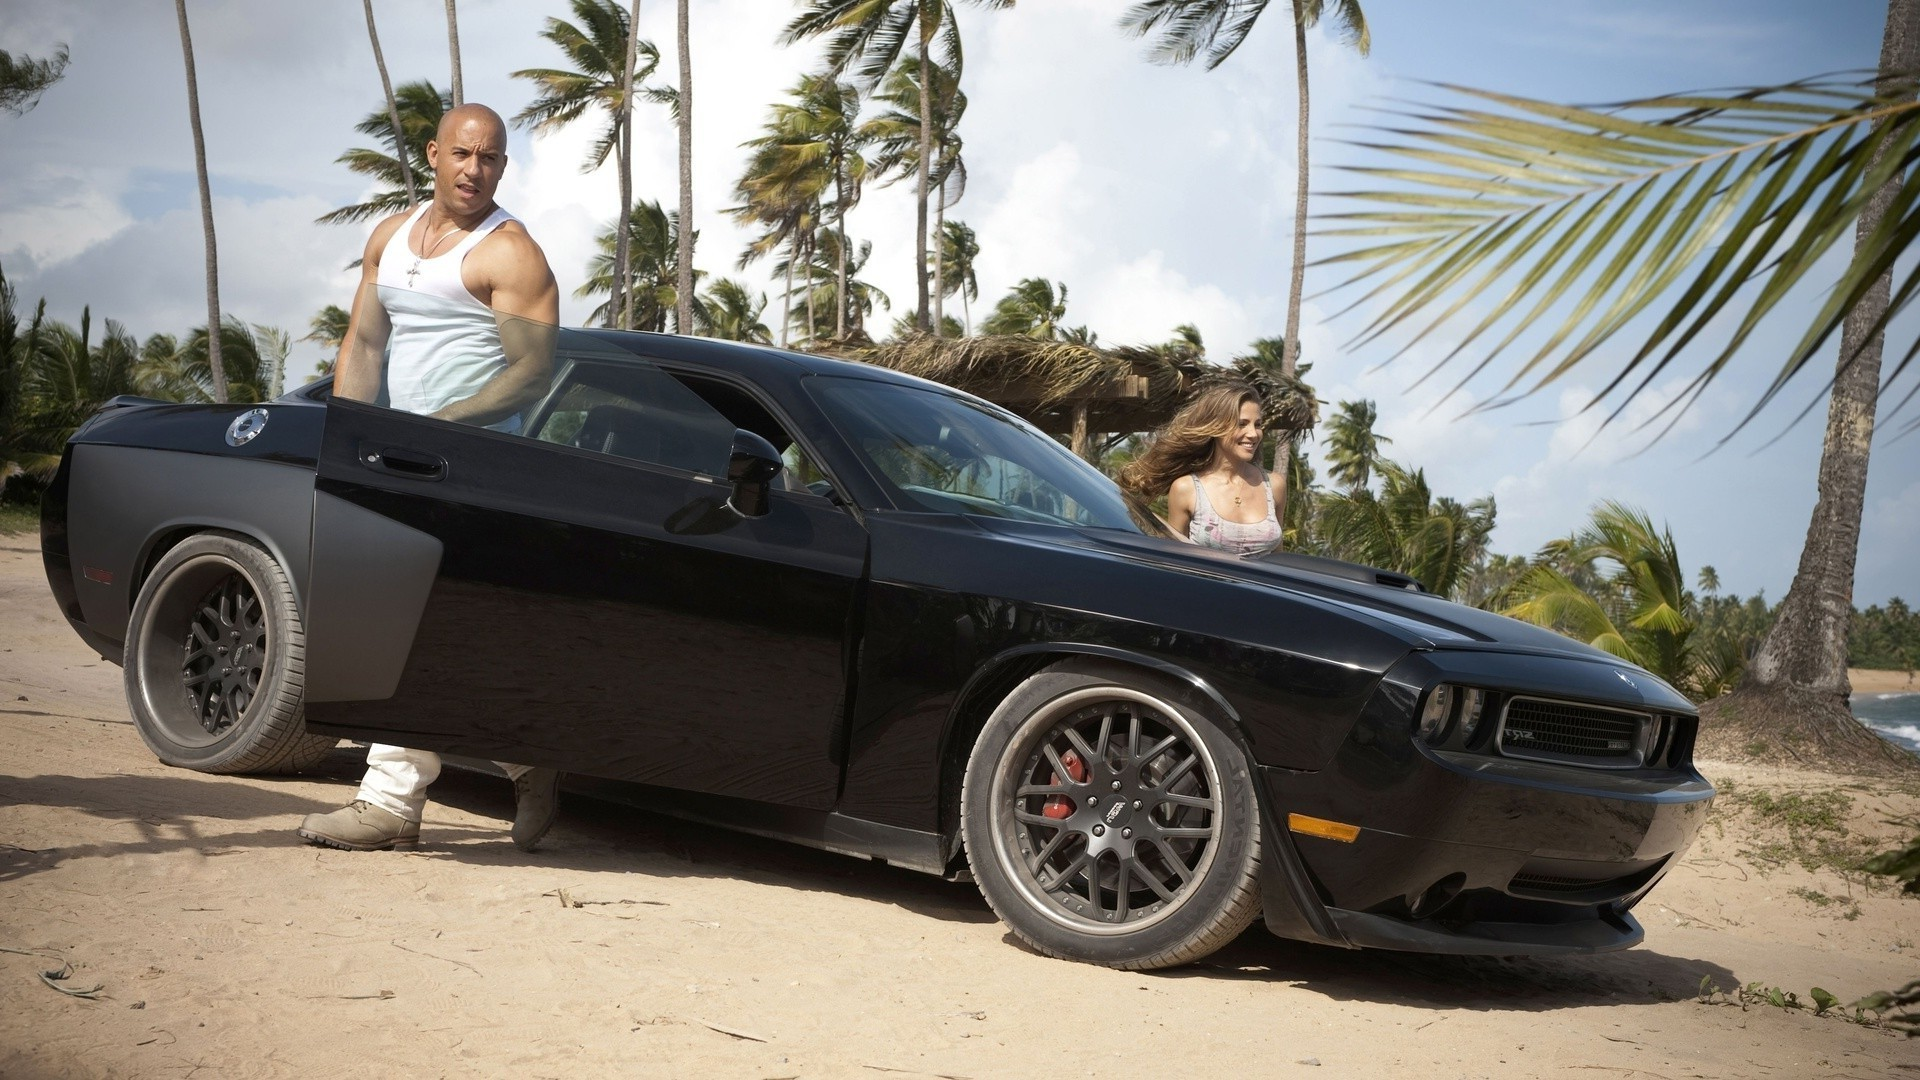 VIN Diesel came to the beach in their cool cars